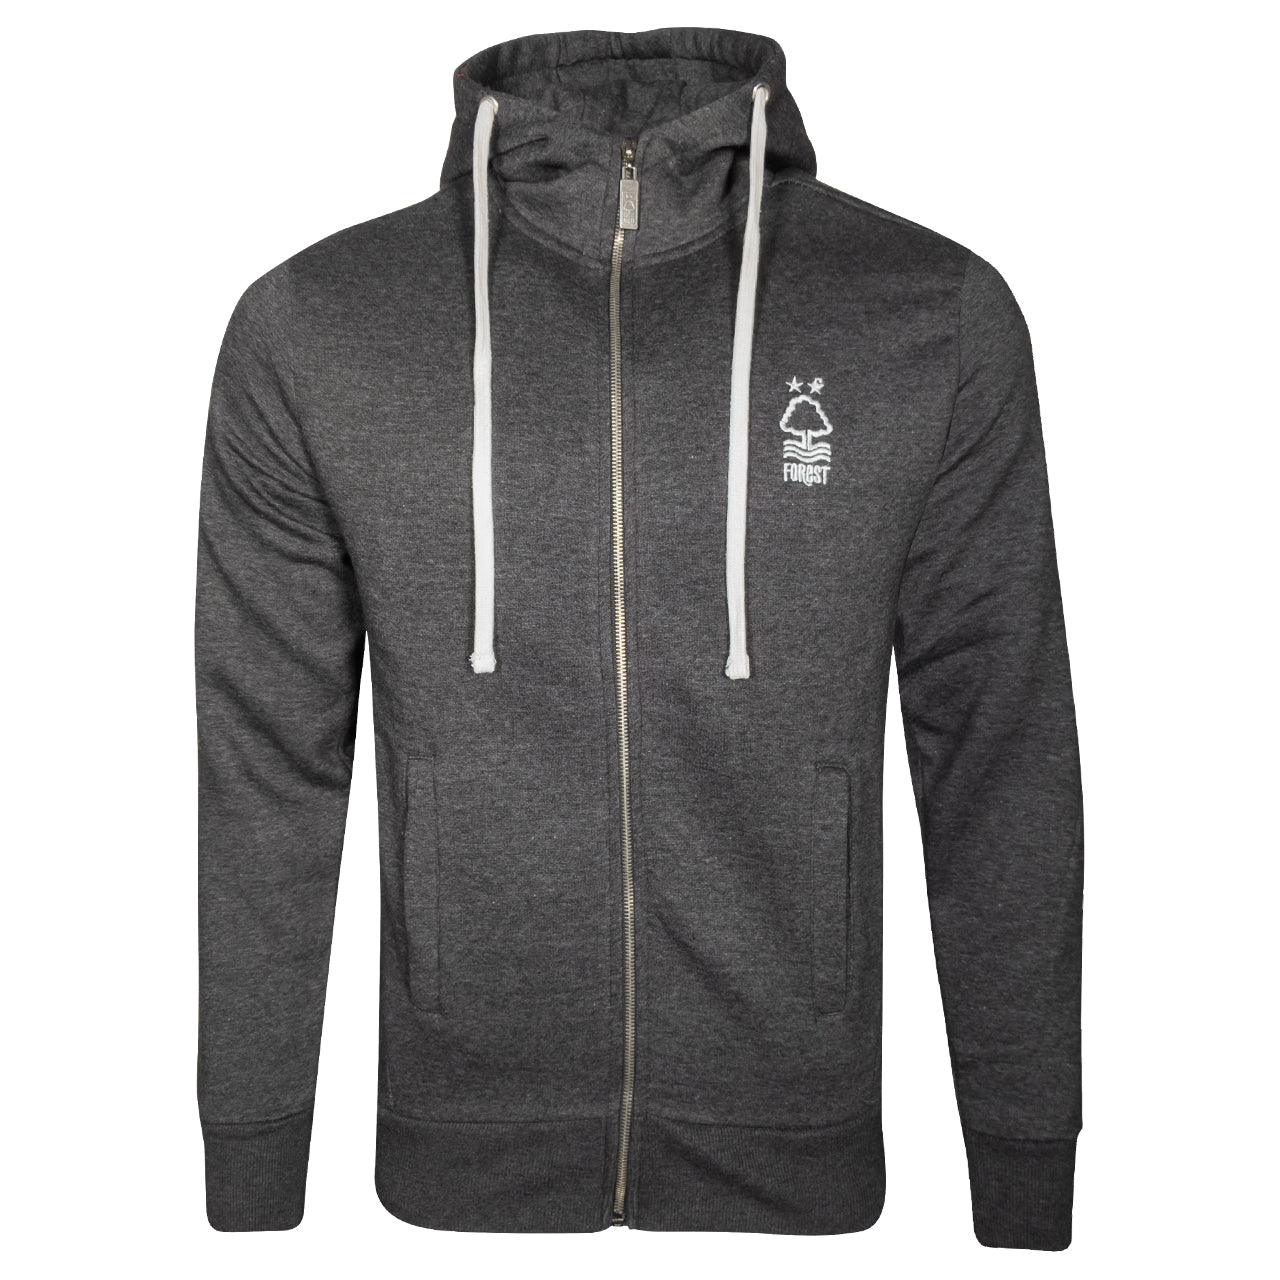 NFFC Junior Black Marl Essential Zip Hoodie